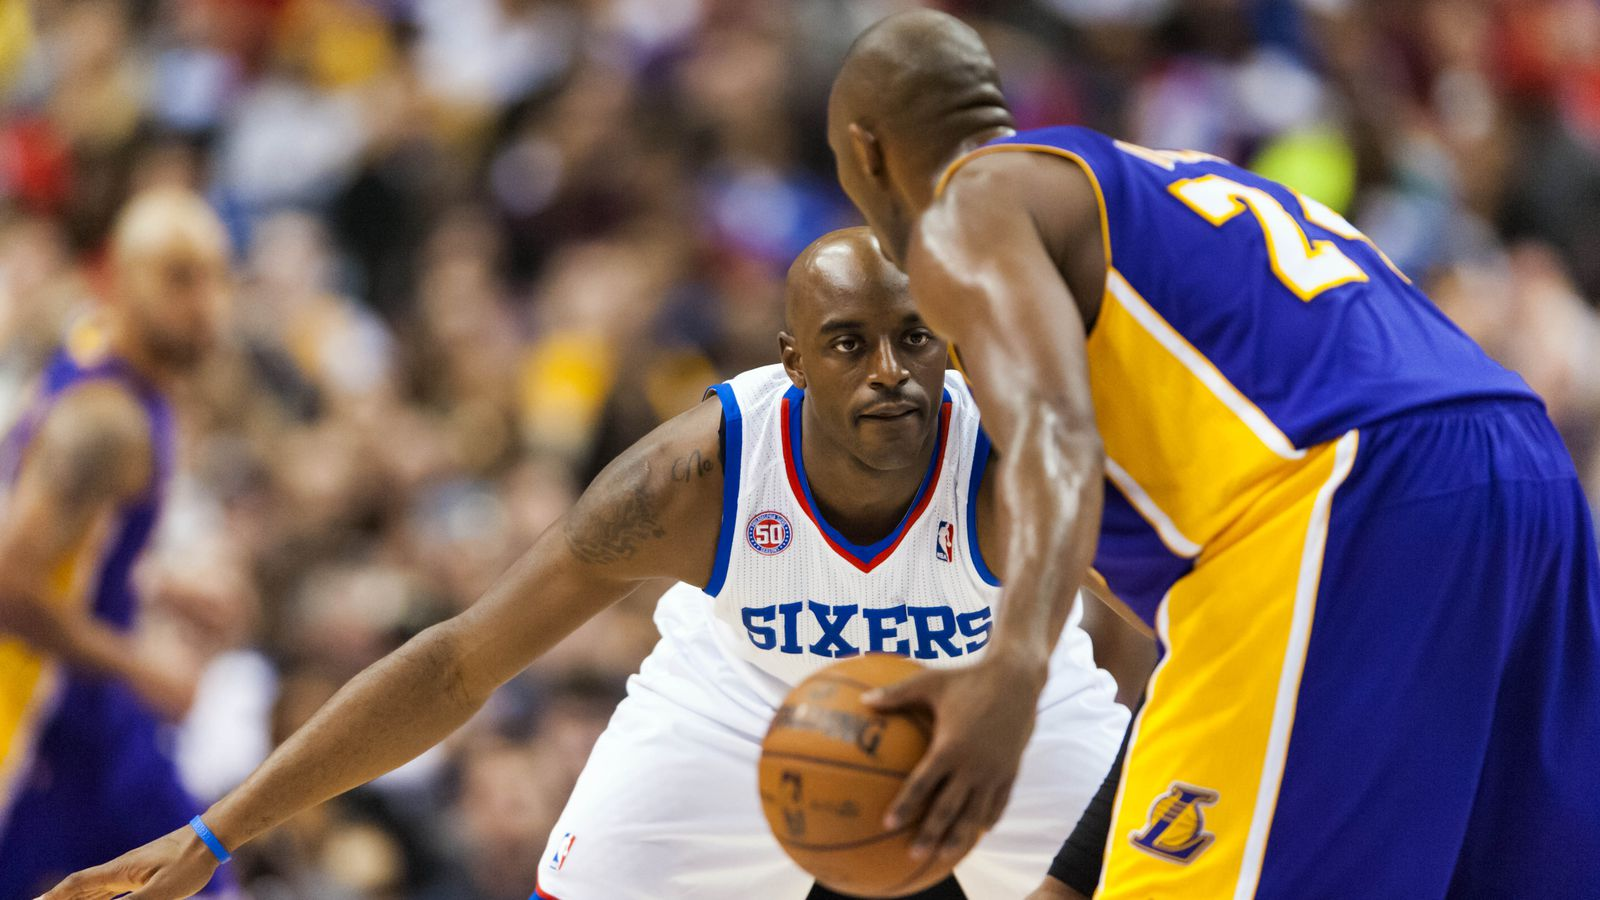 76ers Vs Lakers: Sixers Vs. Lakers Preview: Not The Eagles